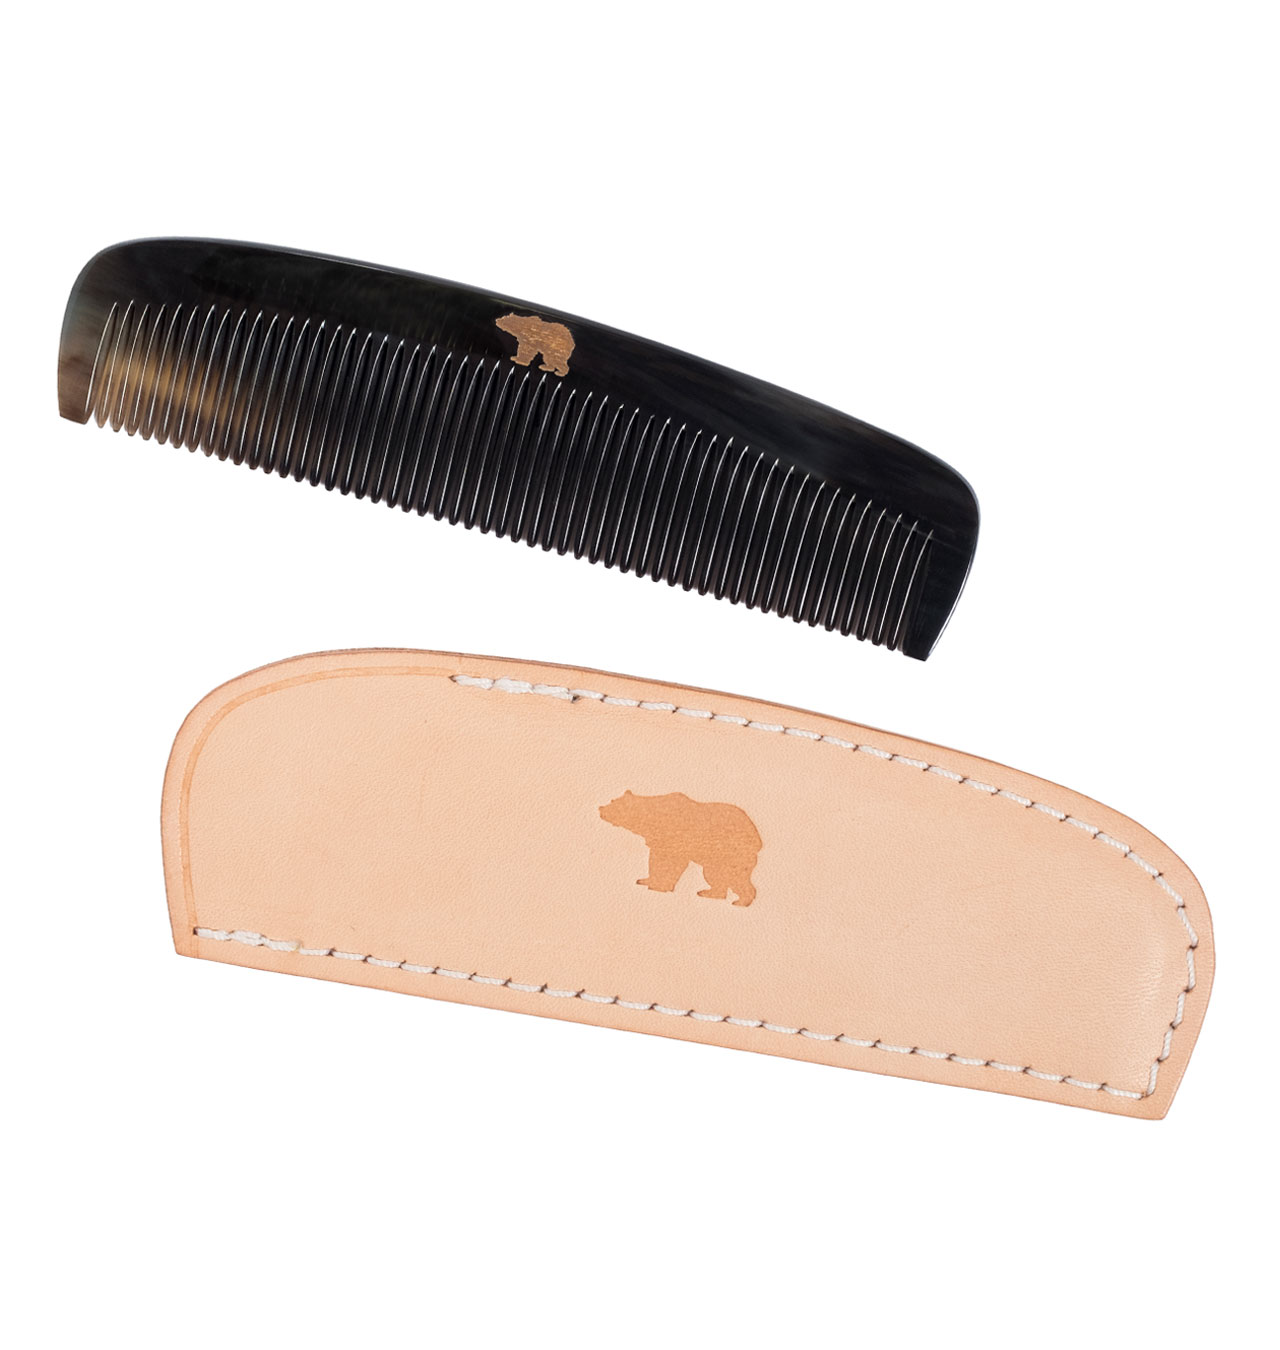 Ondura---Horn-Comb-with-Leather-Case---Tan